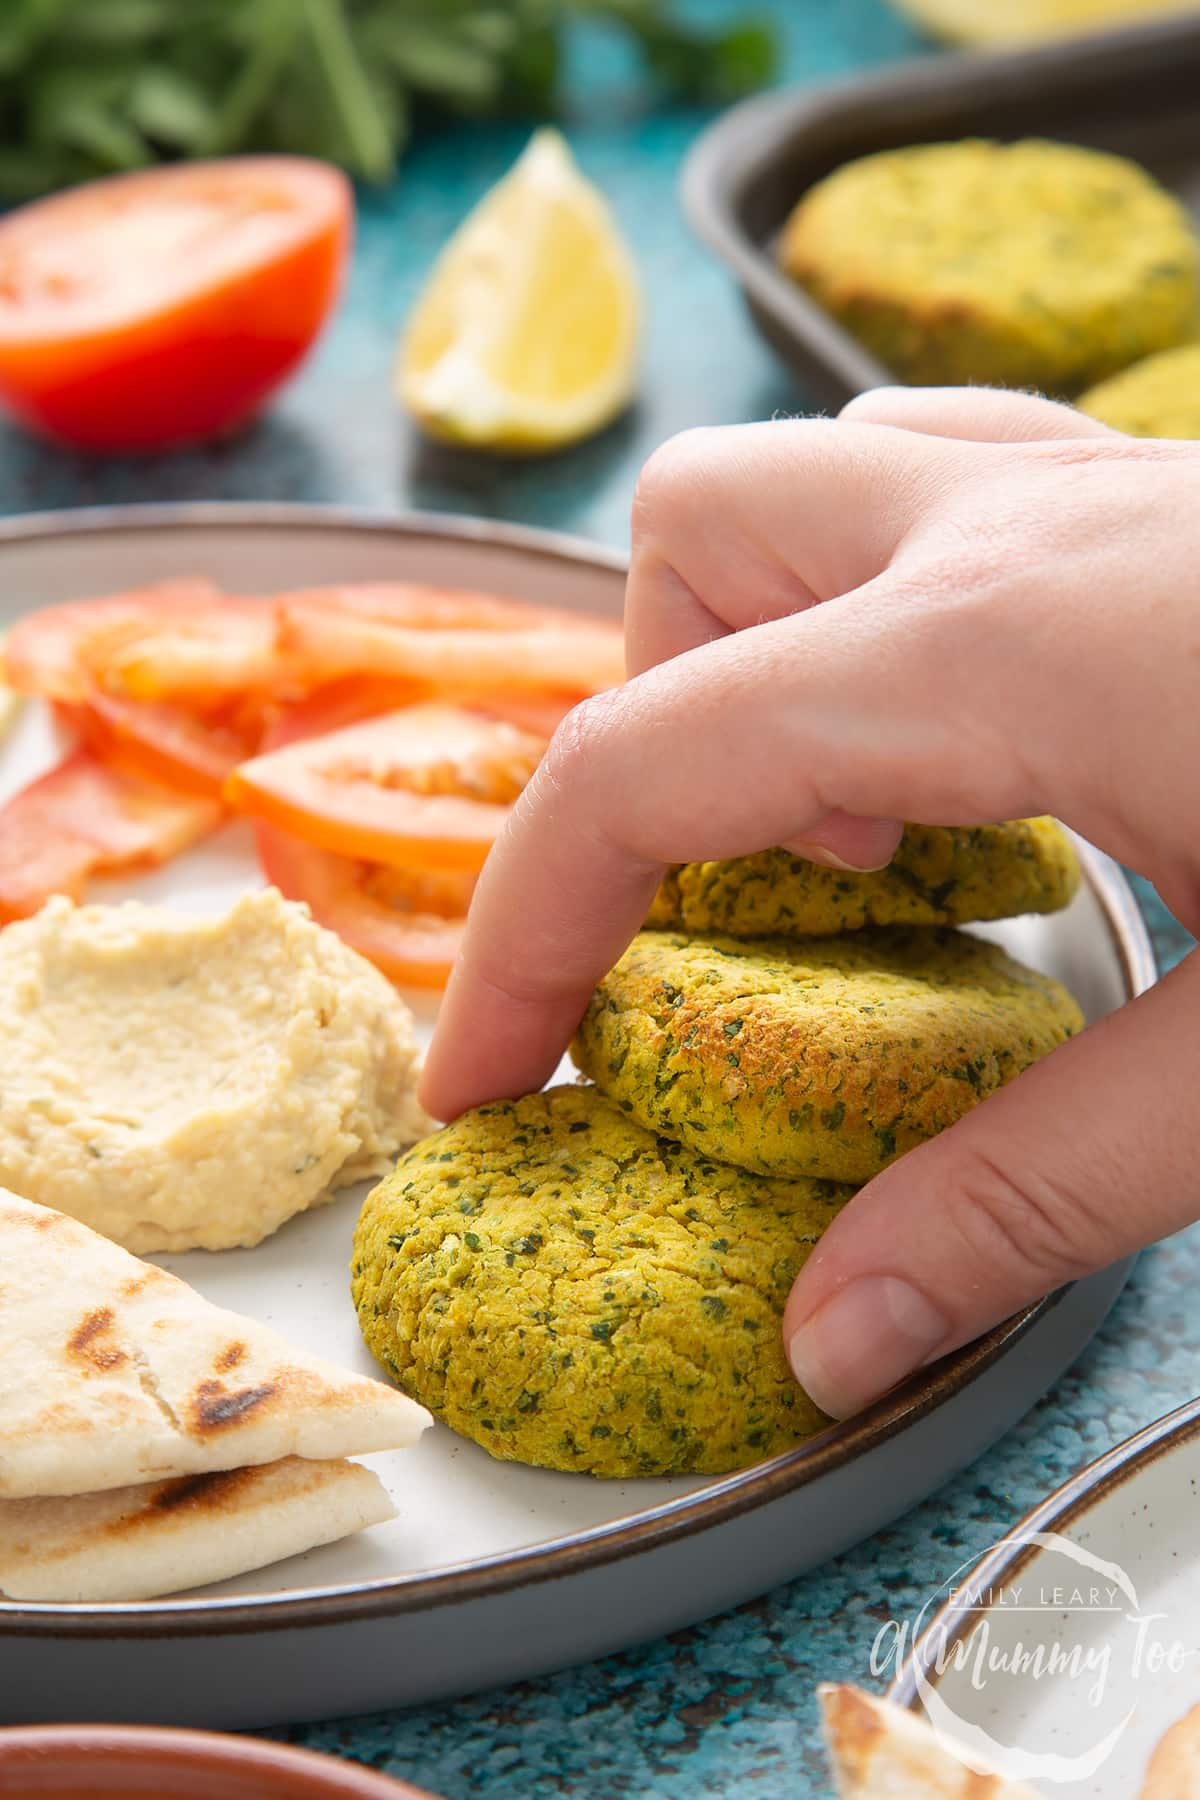 Gluten-free falafel arranged on a plate with tomatoes, cucumber, hummus and  griddled flatbread. A hand reaches to take one.